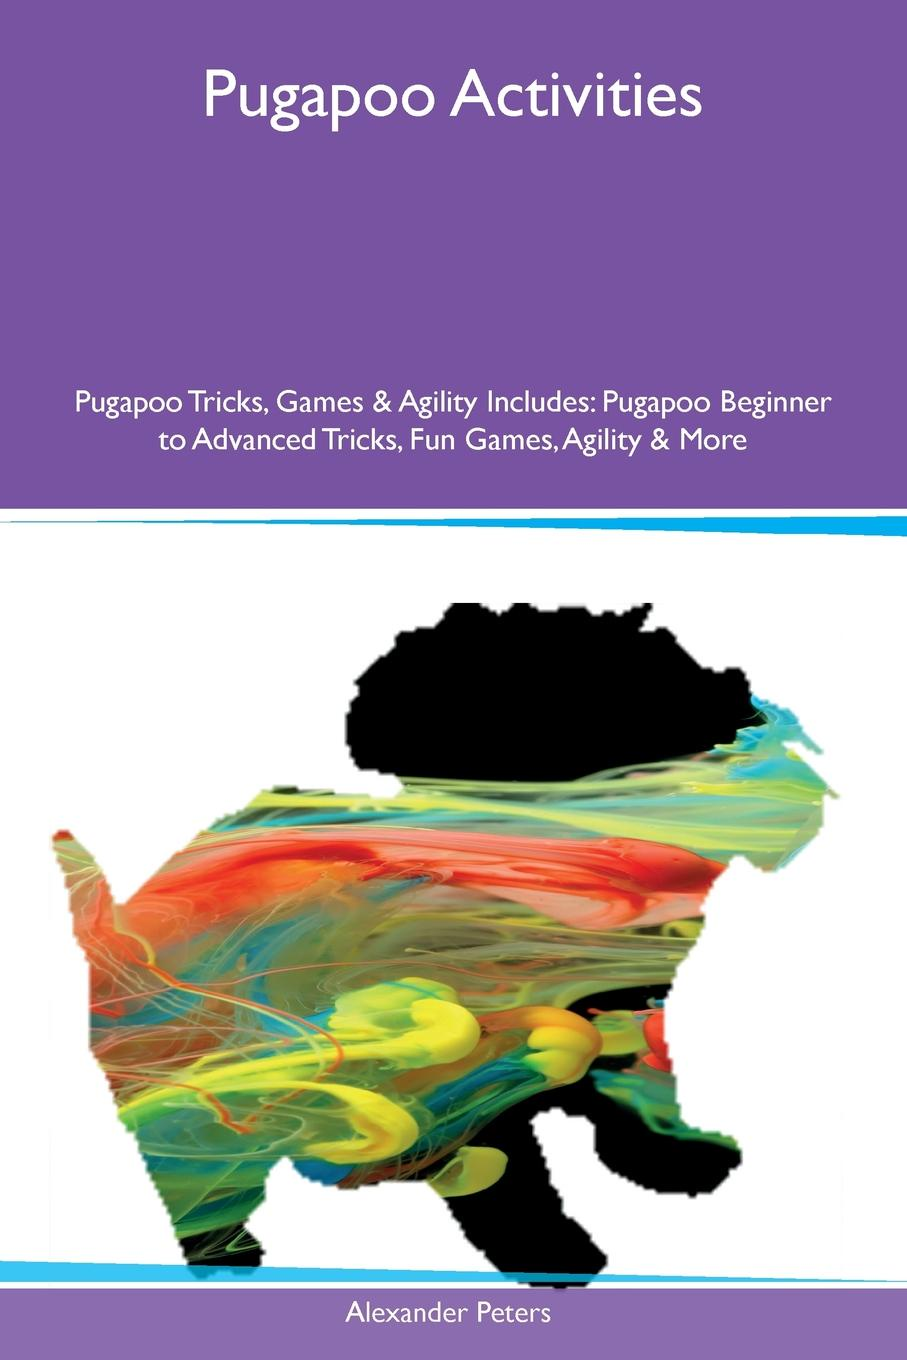 Alexander Peters Pugapoo Activities Tricks, Games & Agility Includes. Beginner to Advanced Fun Games, More